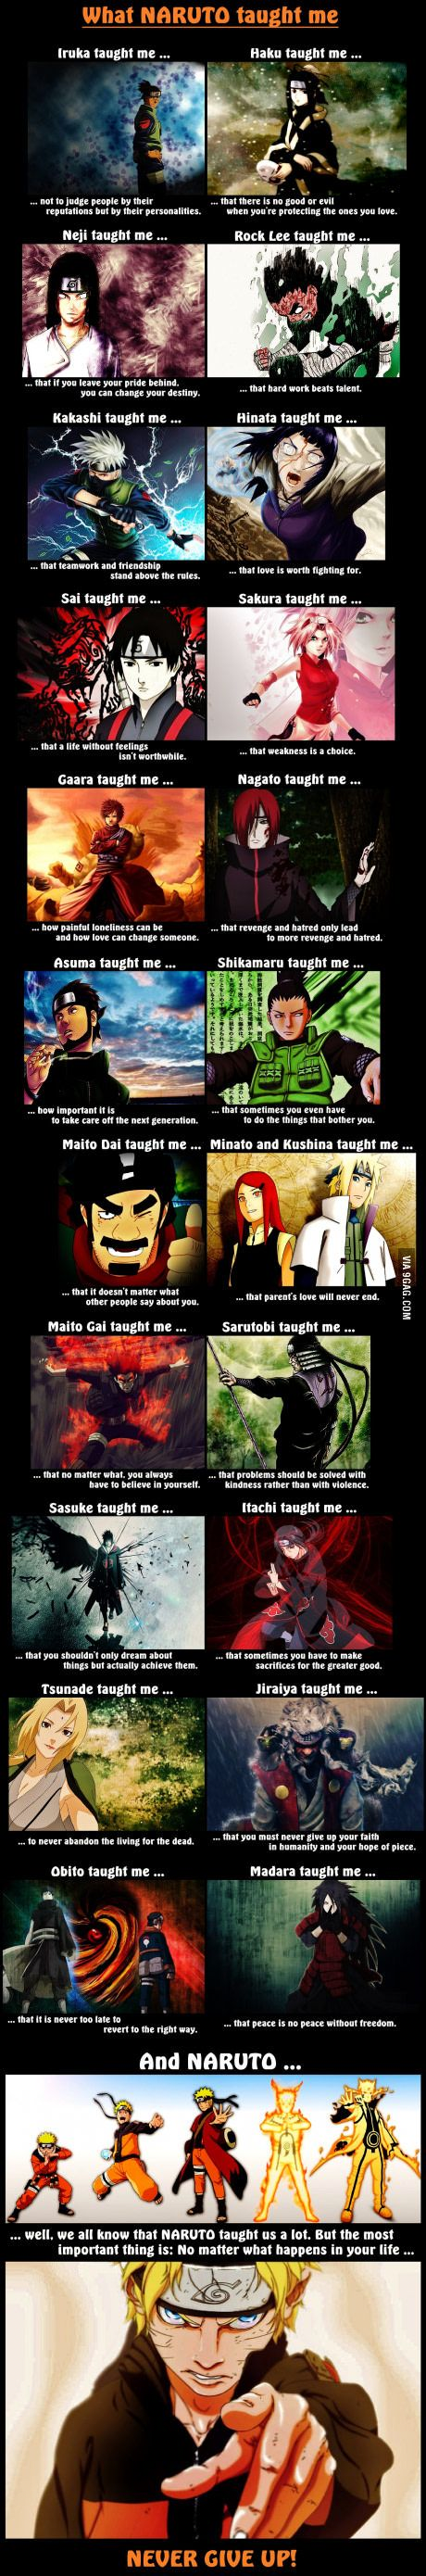 """I finished the manga last week, so I wanted to make my on """"What Naruto taught me"""""""